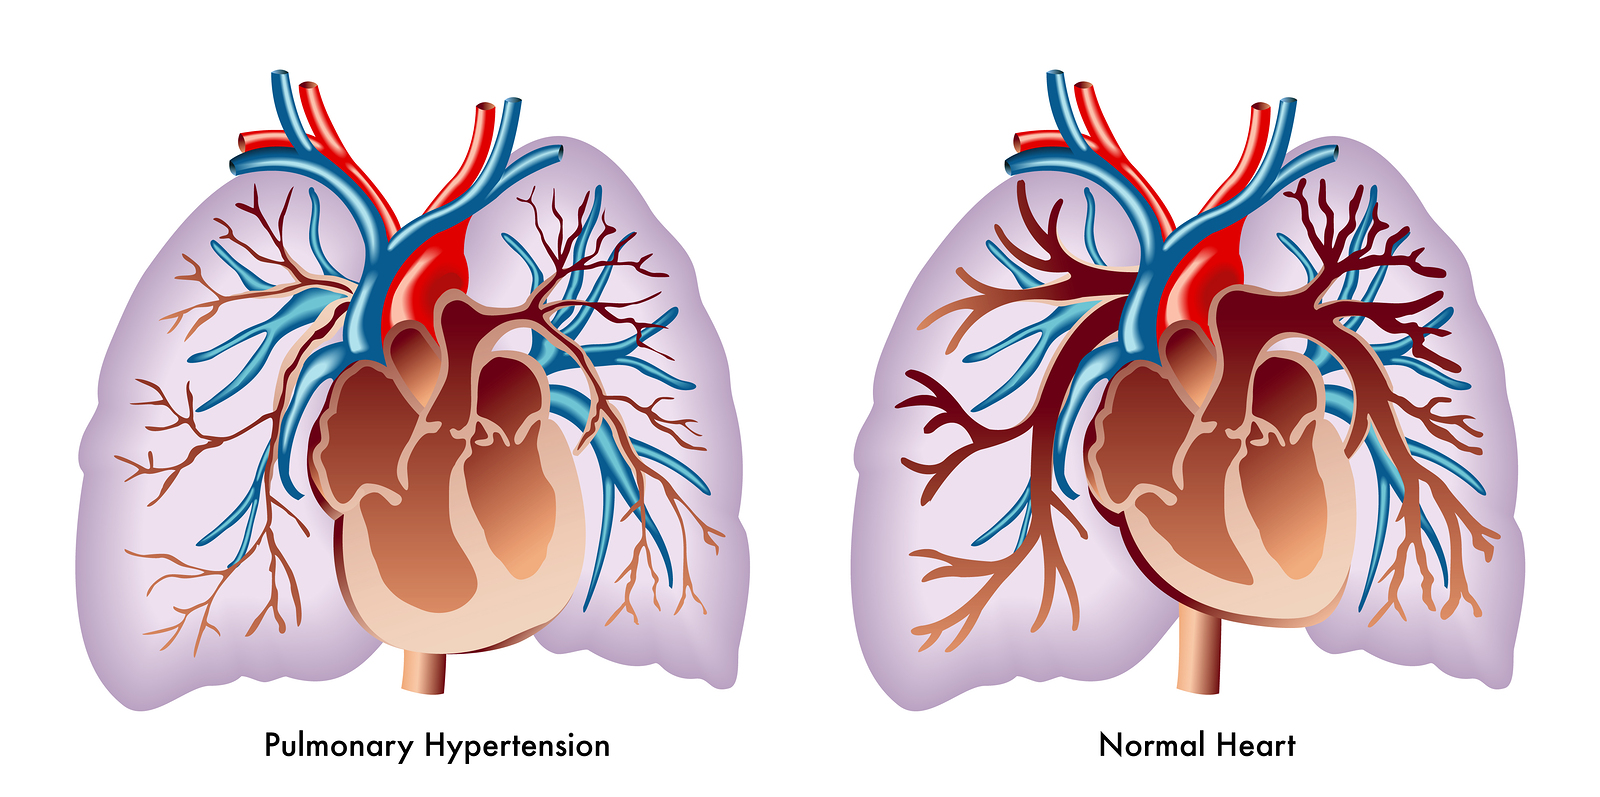 Pulmonary High Blood Pressure - Net Health Book